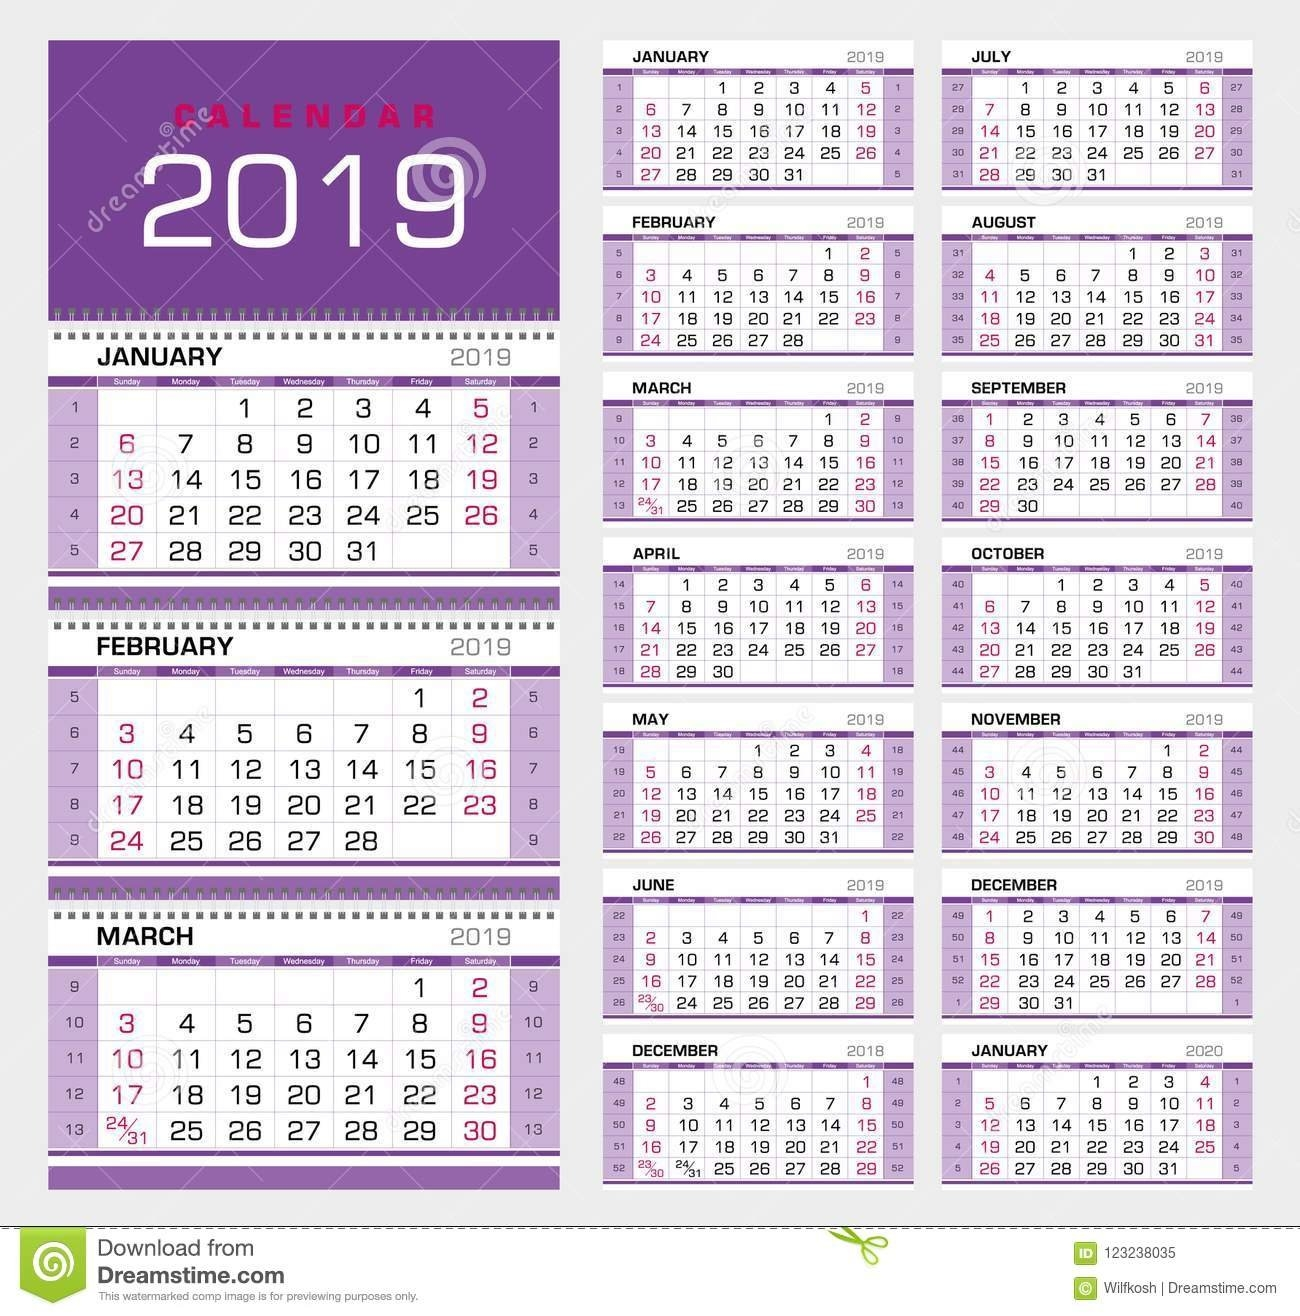 Wall Quarterly Calendar 2019 With Week Numbers. Week Start From Calendar Week 51 2019